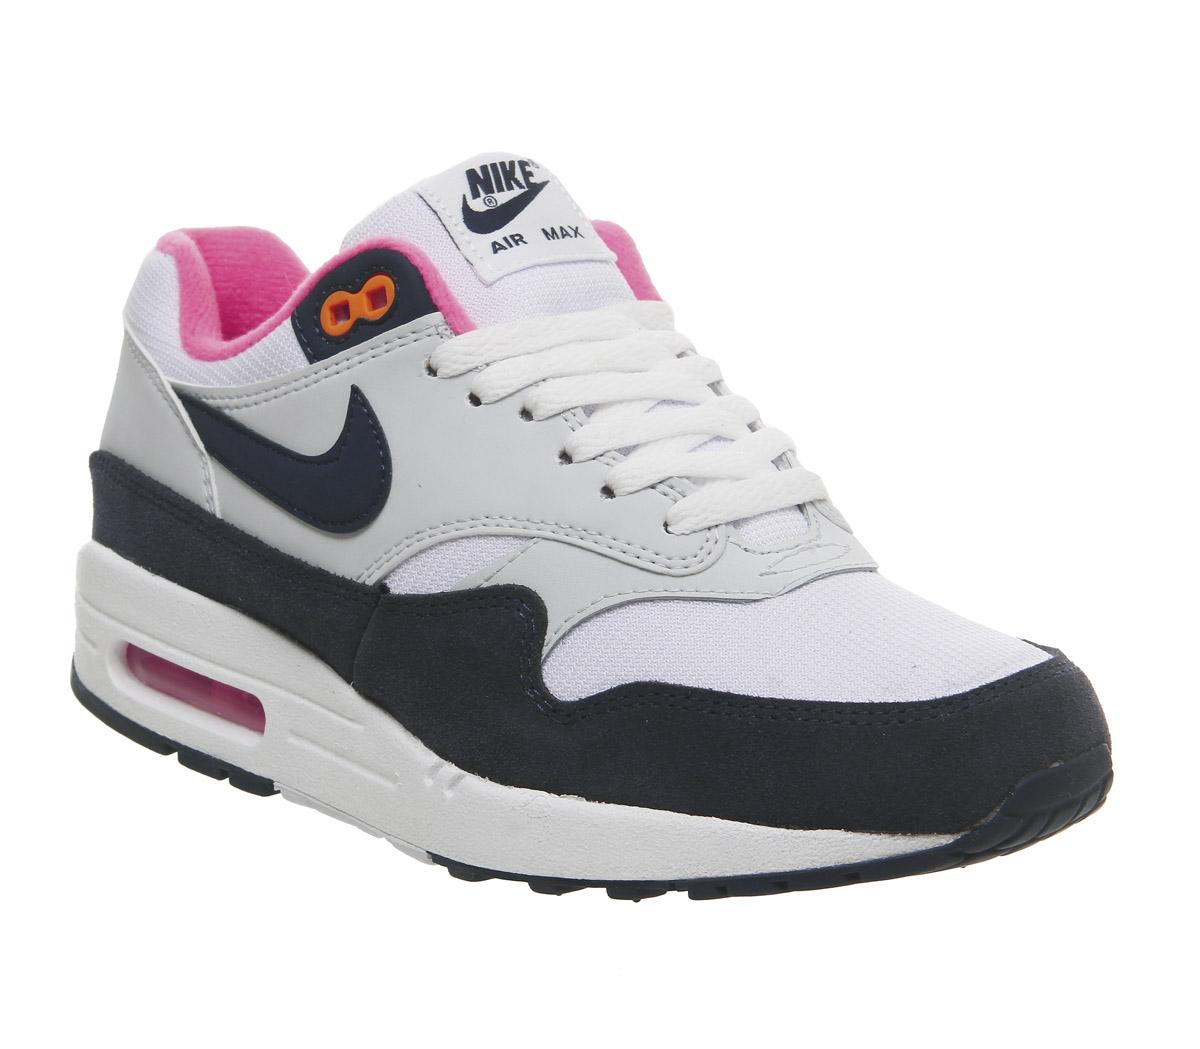 Nike Air Max 1 Trainers In Navy